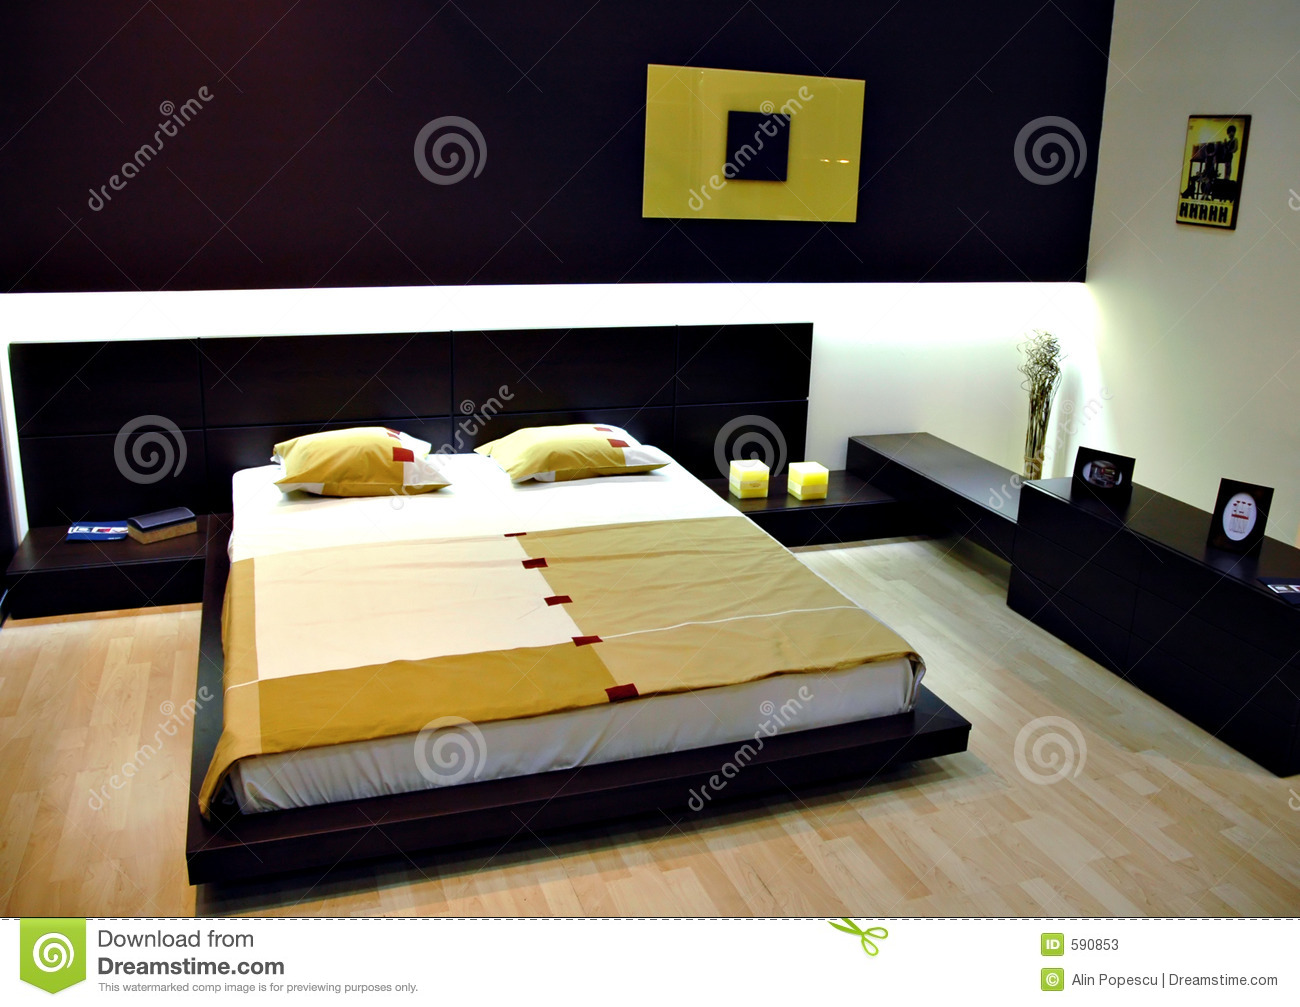 Chambre coucher moderne photos stock image 590853 for Photo de chambre a coucher moderne